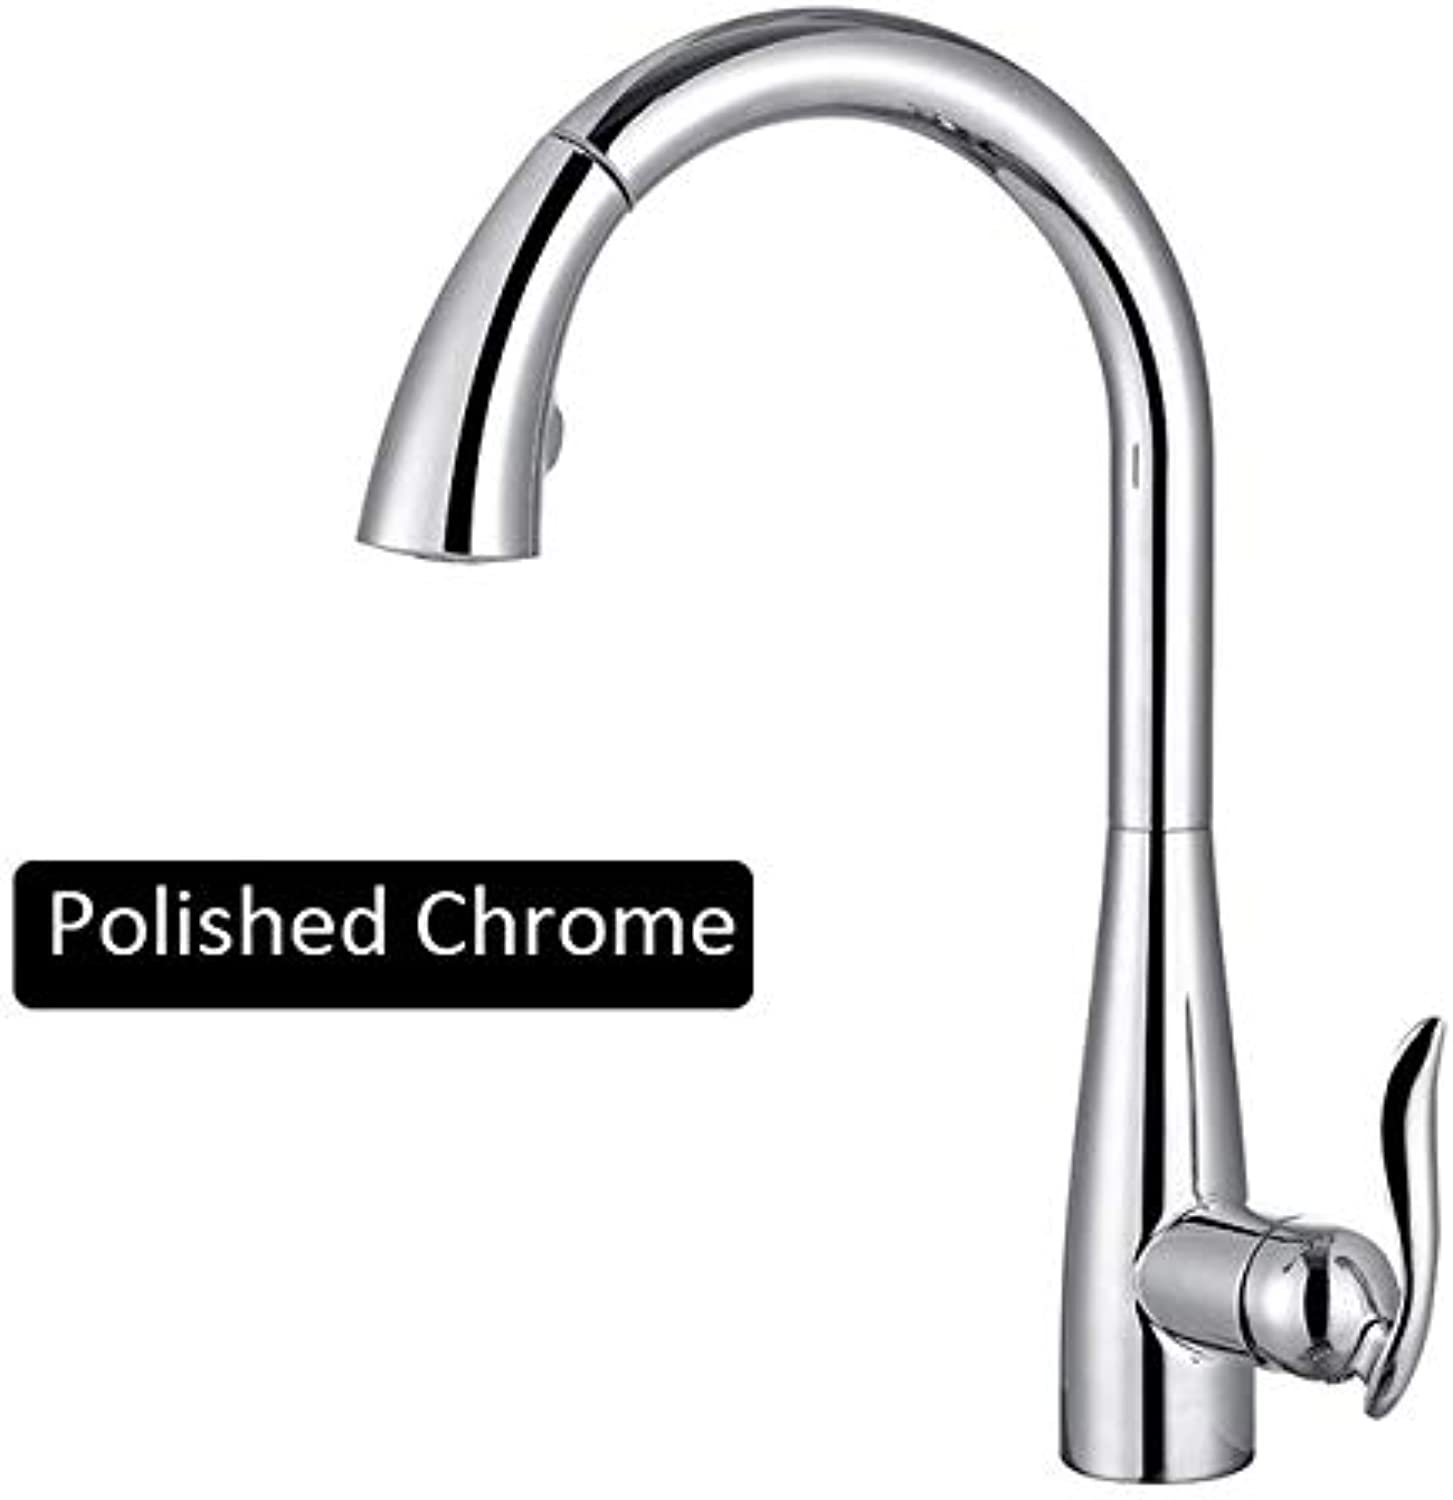 U-Enjoy Chandelier Nickel Pull Brushed Brushed Brushed Out Faucet Top Quality Chrome Kitchen Mixer Tap Single Mixer Tap 360 Handle redation Kitchen Water Mixer Tap Free Shipping [Chrome] dc3e43